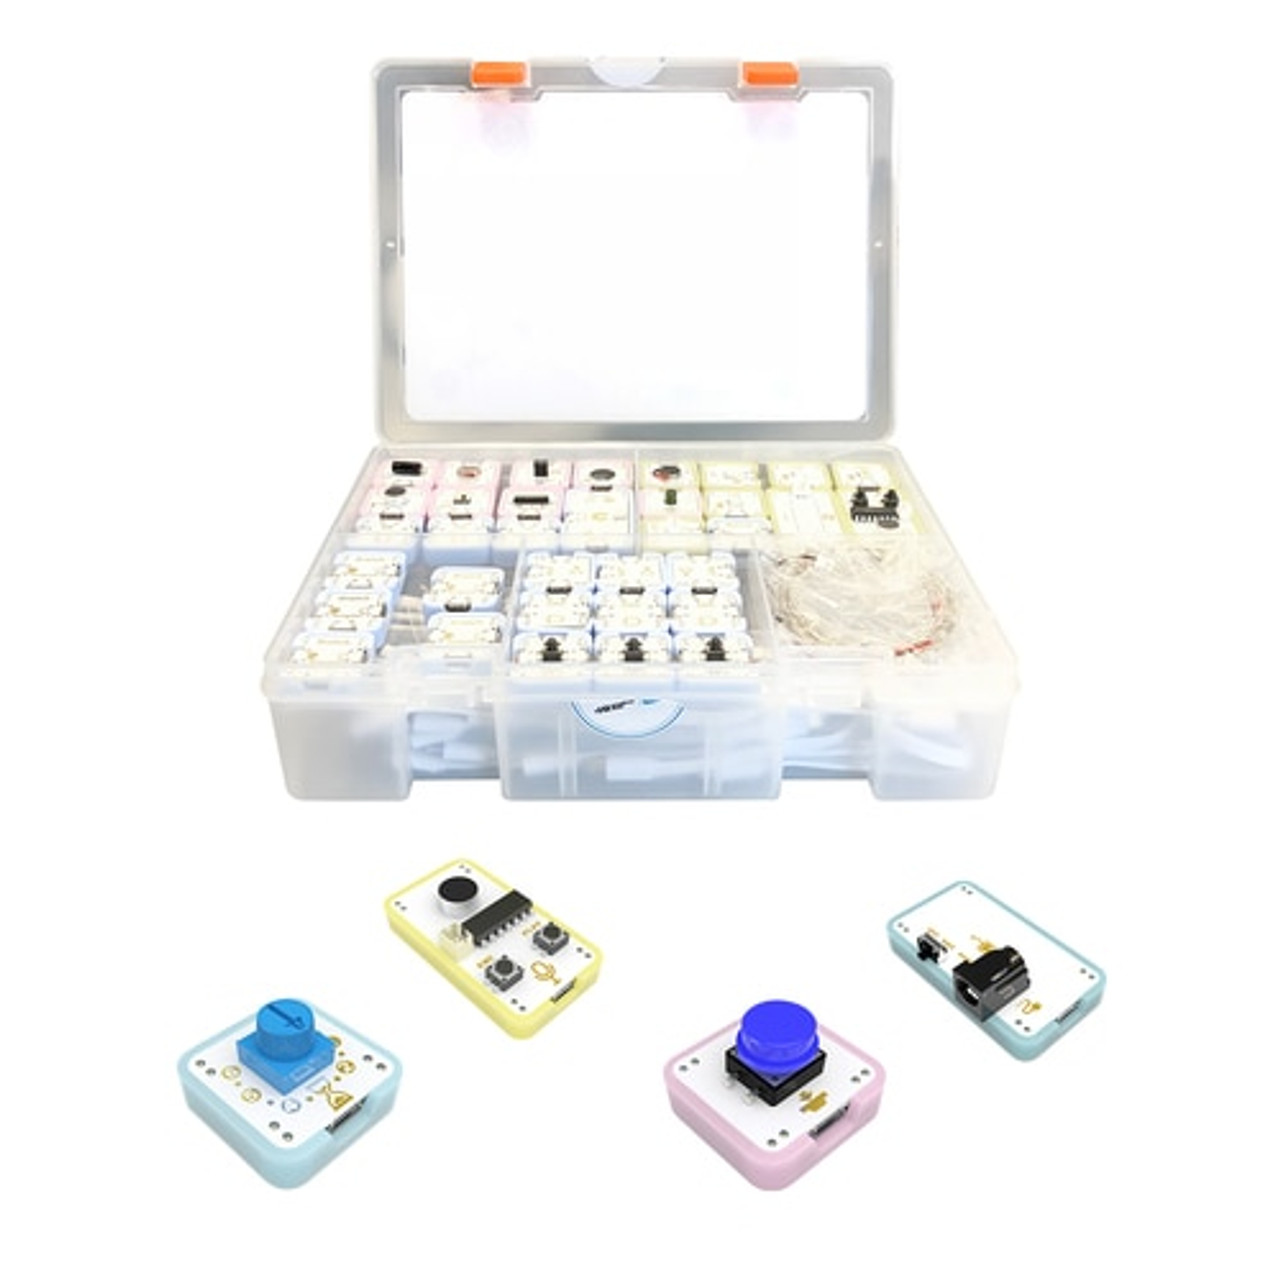 STEAM SNIPS Kit - Electronic Building and Coding Modules - Over 70  Components